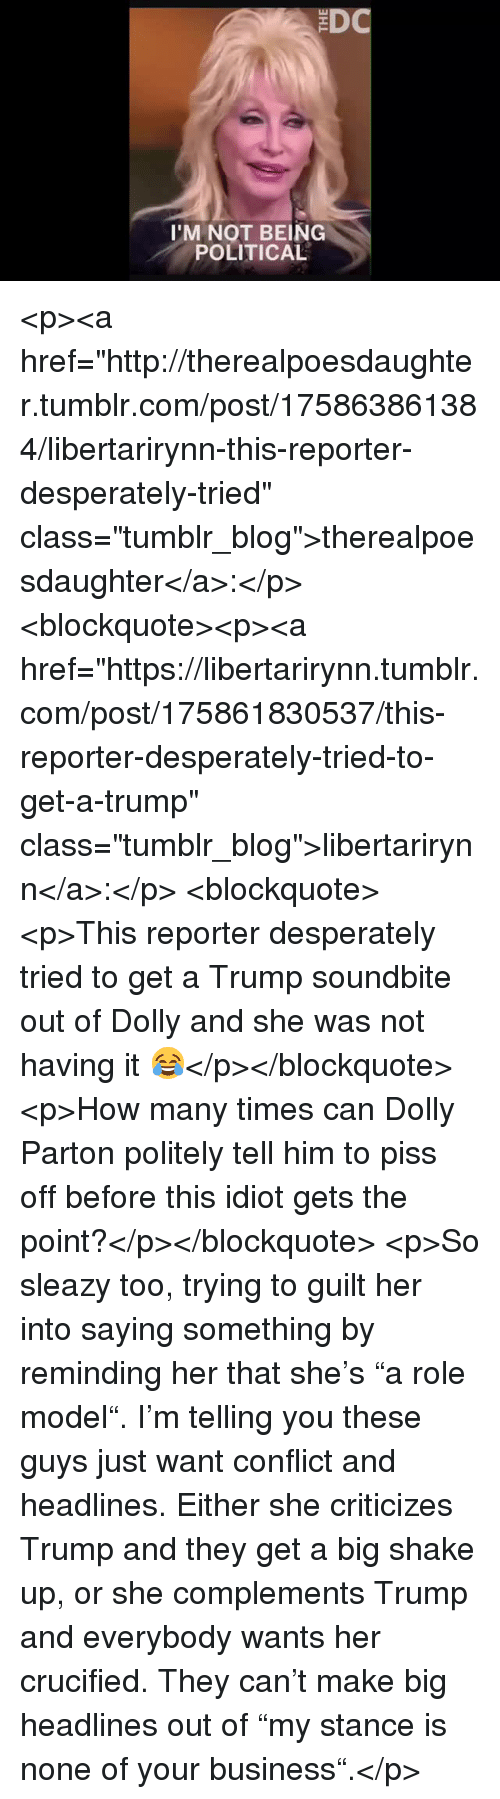 "Crucified: 'M NOT BEING  POLITICAL <p><a href=""http://therealpoesdaughter.tumblr.com/post/175863861384/libertarirynn-this-reporter-desperately-tried"" class=""tumblr_blog"">therealpoesdaughter</a>:</p>  <blockquote><p><a href=""https://libertarirynn.tumblr.com/post/175861830537/this-reporter-desperately-tried-to-get-a-trump"" class=""tumblr_blog"">libertarirynn</a>:</p>  <blockquote><p>This reporter desperately tried to get a Trump soundbite out of Dolly and she was not having it 😂</p></blockquote>  <p>How many times can Dolly Parton politely tell him to piss off before this idiot gets the point?</p></blockquote>  <p>So sleazy too, trying to guilt her into saying something by reminding her that she's ""a role model"". I'm telling you these guys just want conflict and headlines. Either she criticizes Trump and they get a big shake up, or she complements Trump and everybody wants her crucified. They can't make big headlines out of ""my stance is none of your business"".</p>"